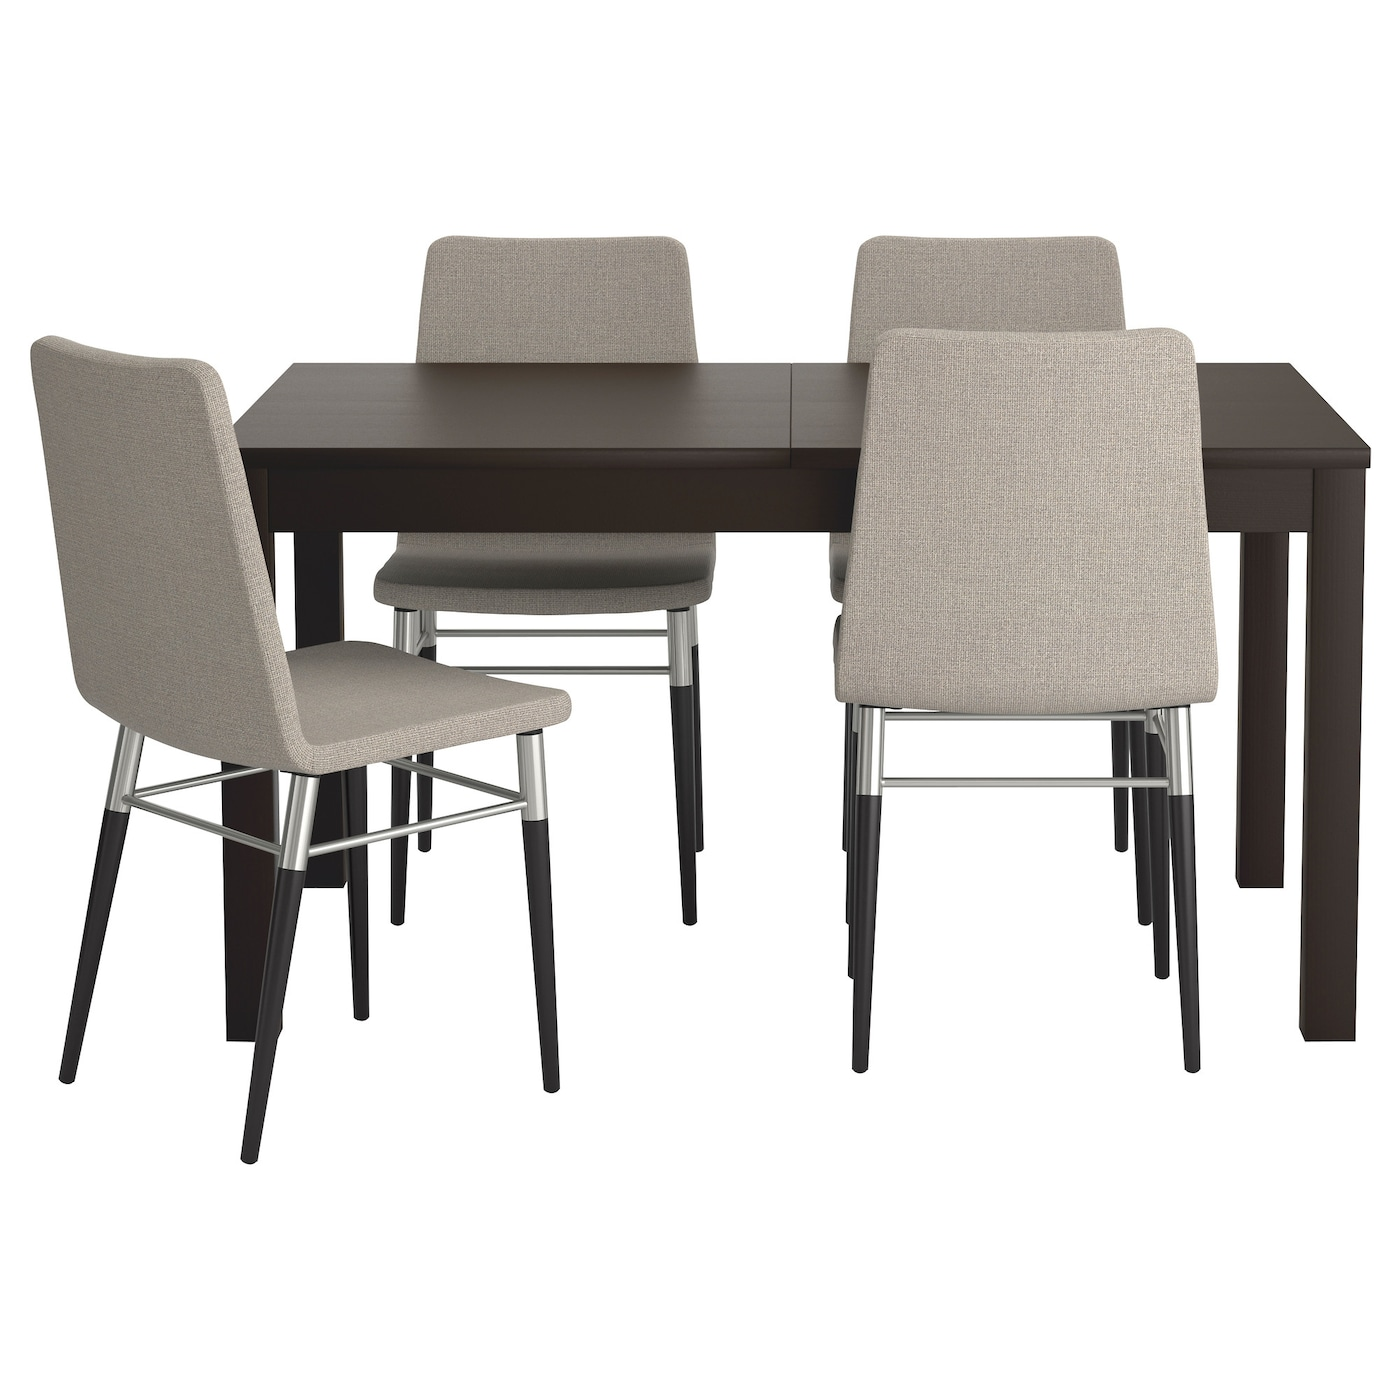 Small kitchen table set - Ikea Preben Bjursta Table And 4 Chairs The Clear Lacquered Surface Is Easy To